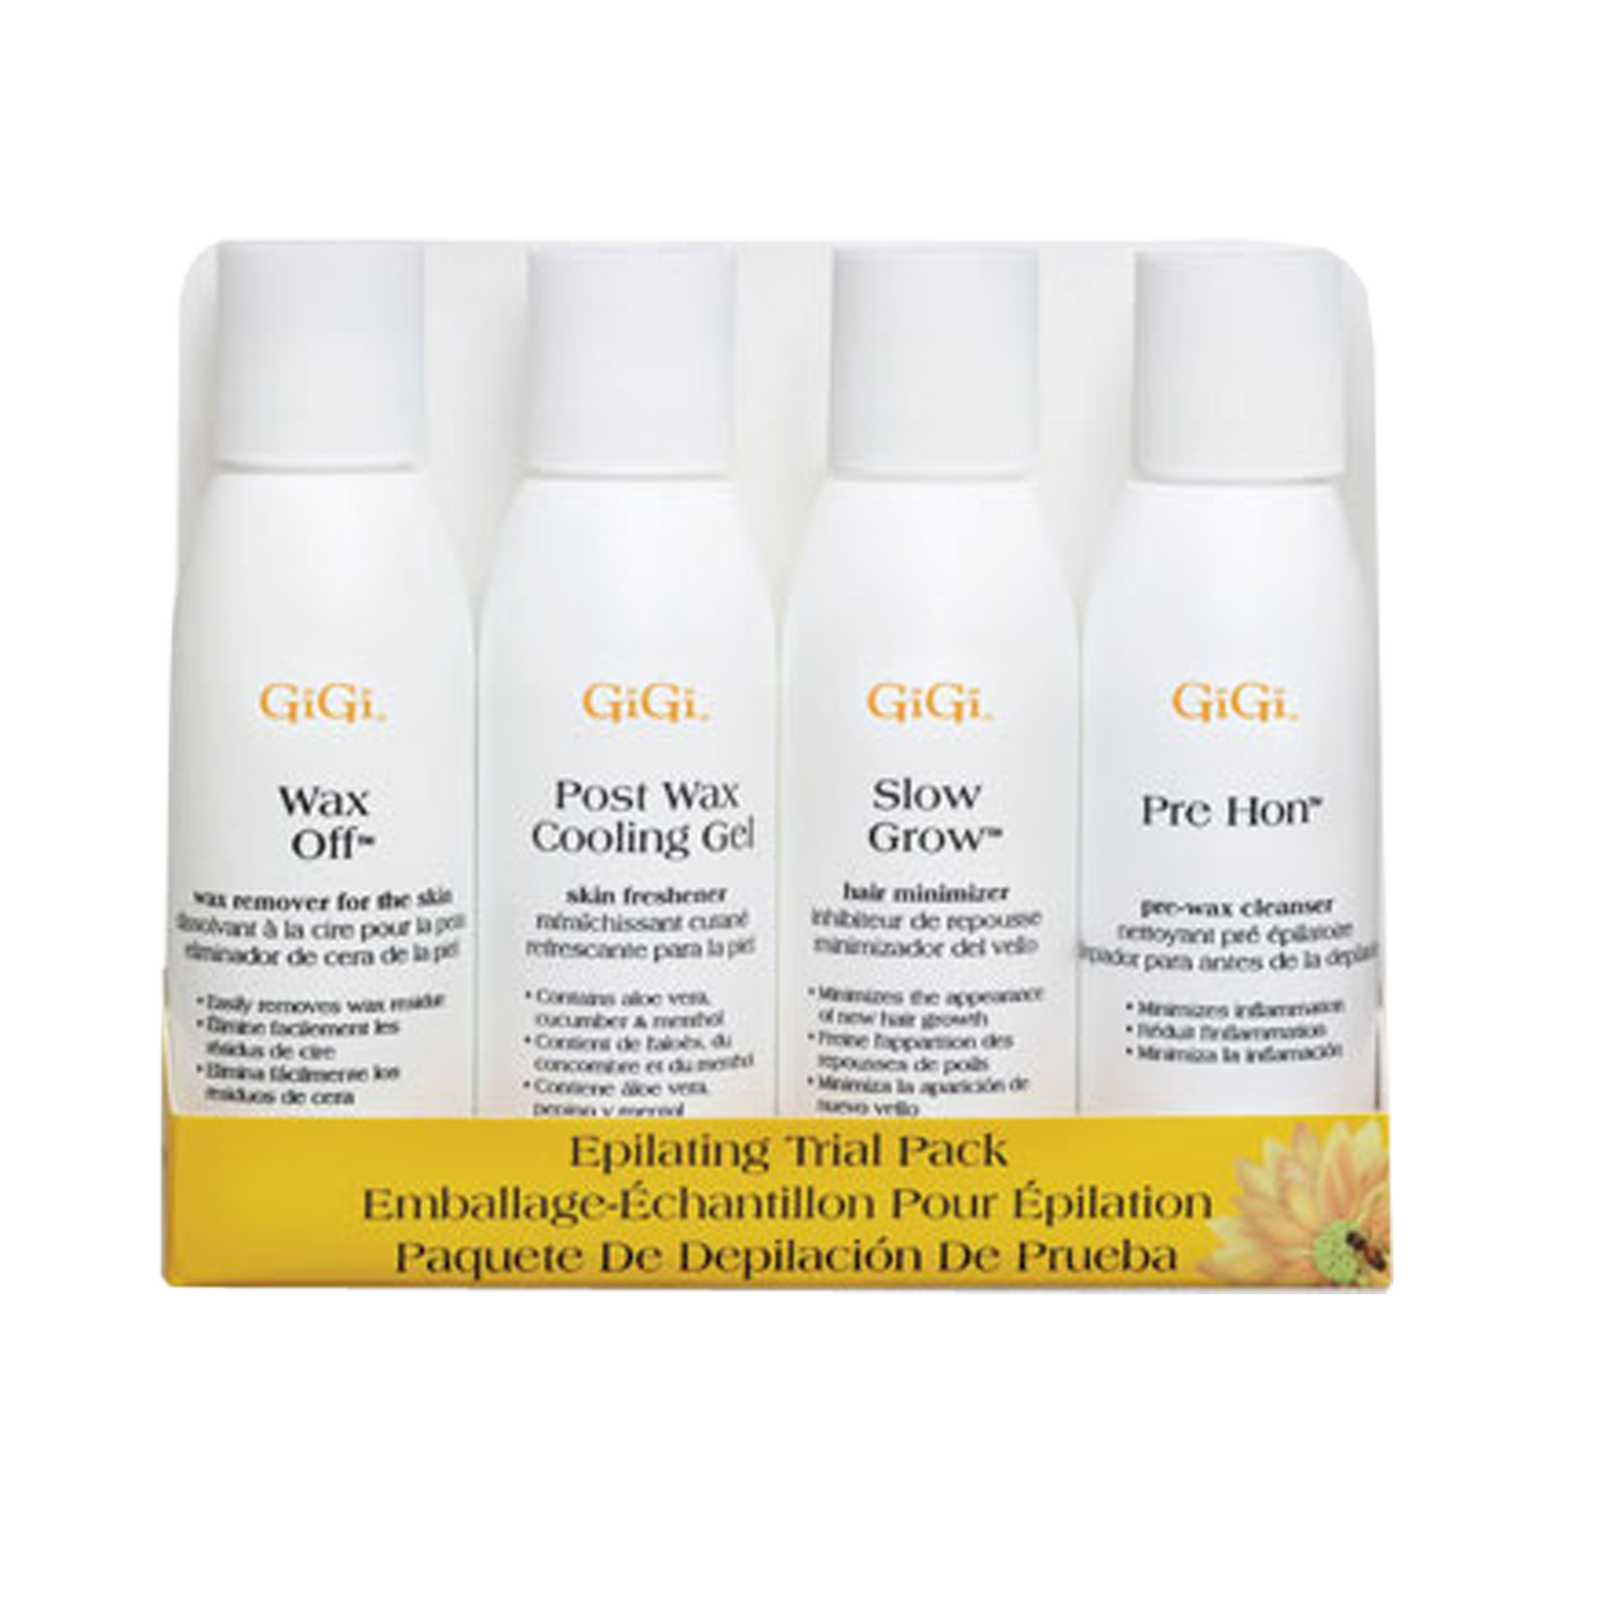 Epilating Lotion Pre-Pack